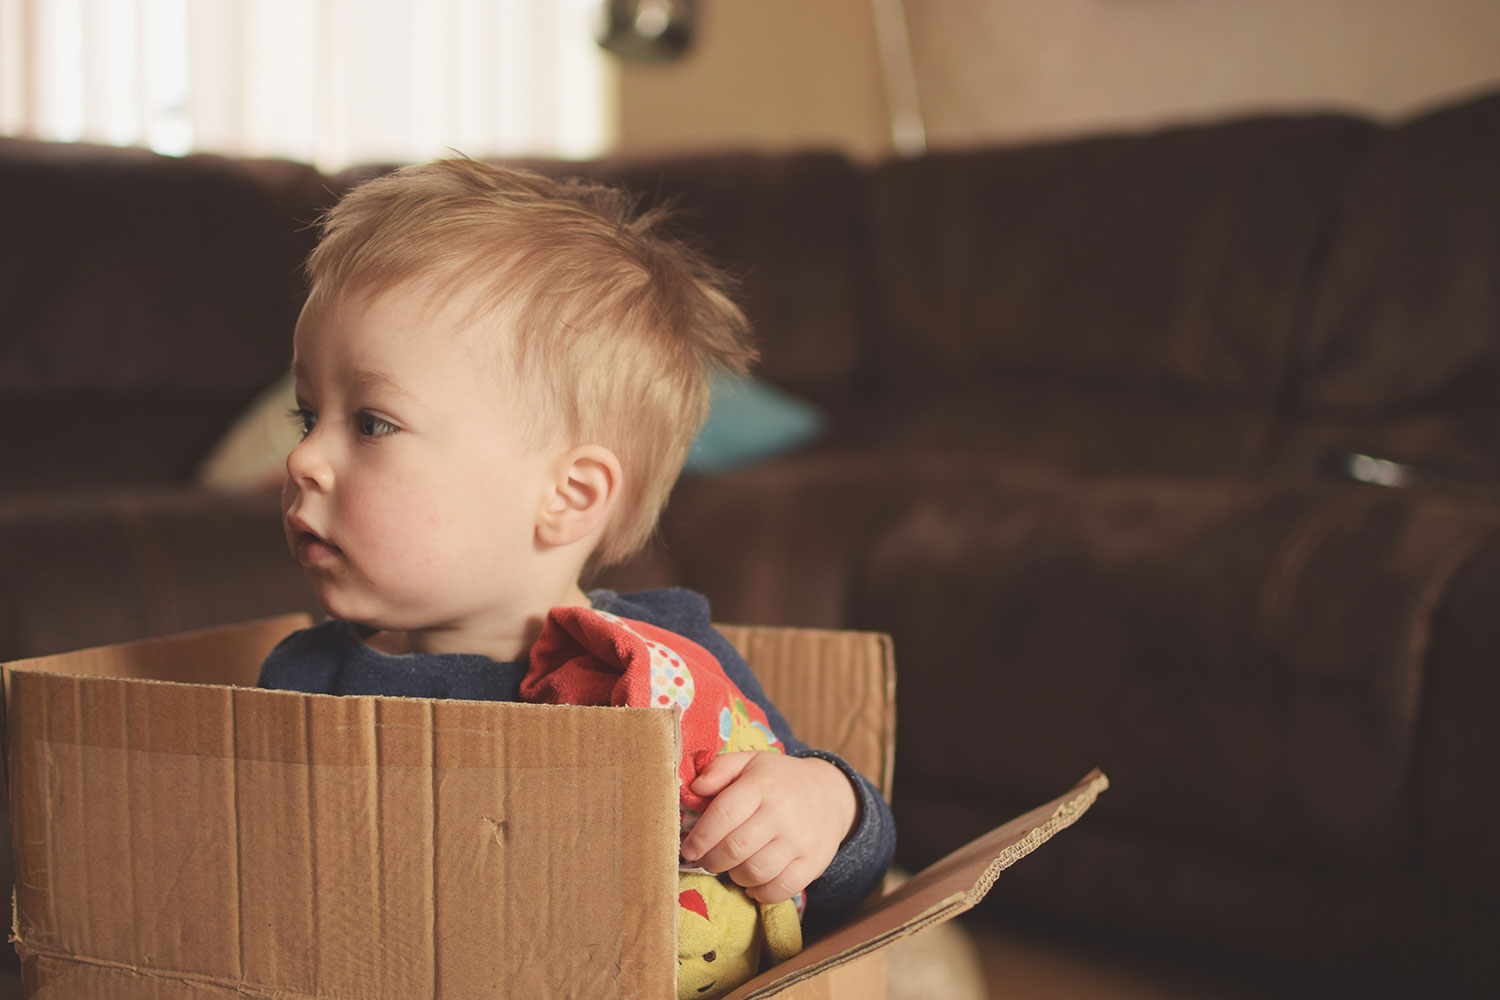 Archie's 27 Month Update - Toddler playing with cardboard box wearing Batman pyjamas